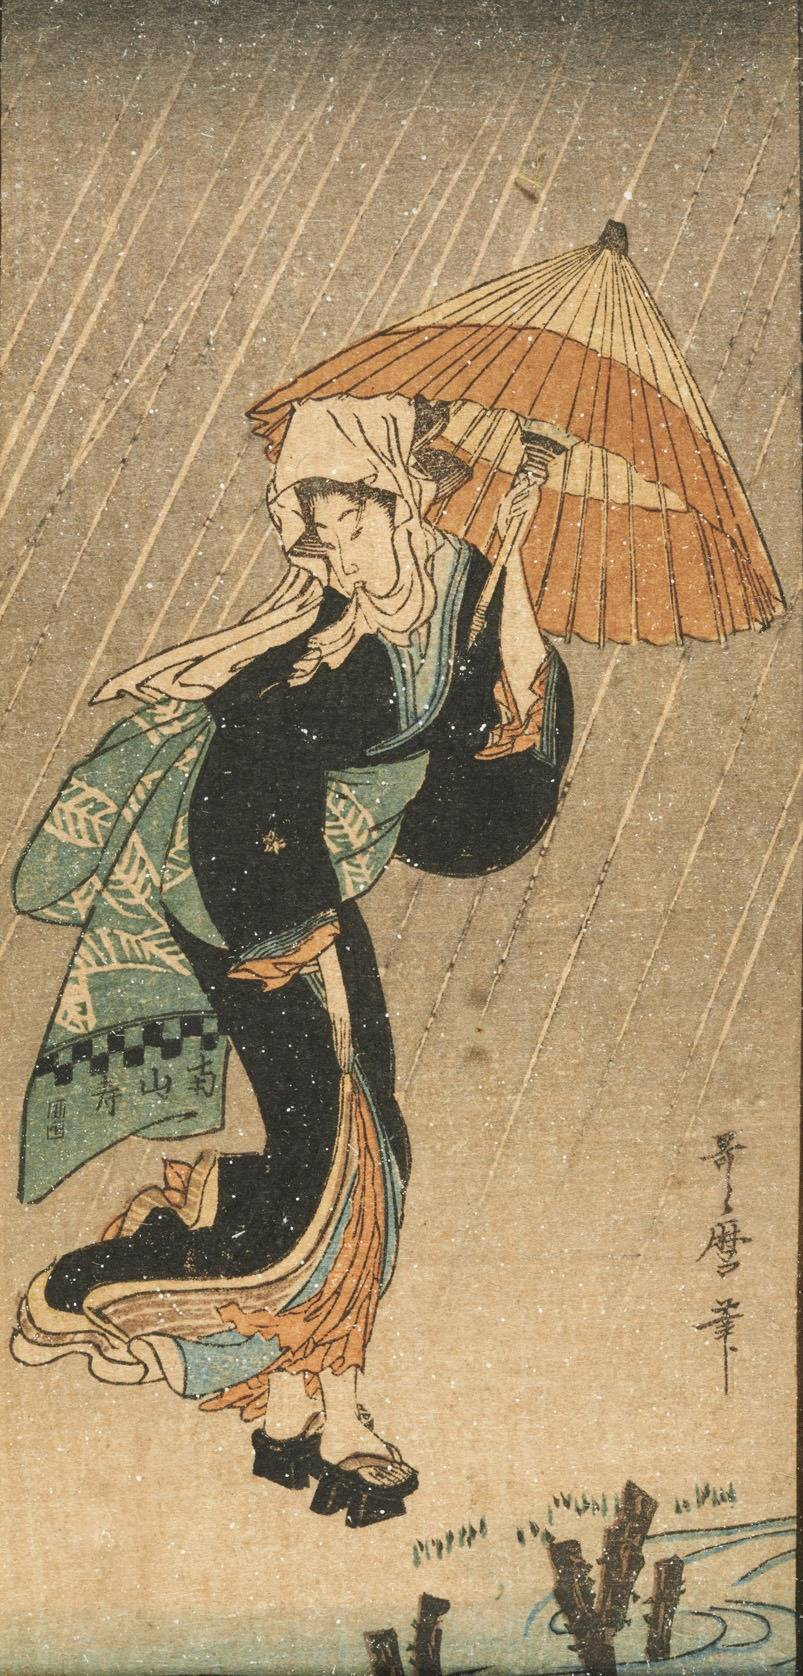 Beauty in the Rain, c. 1802. Kitagawa Utamaro.